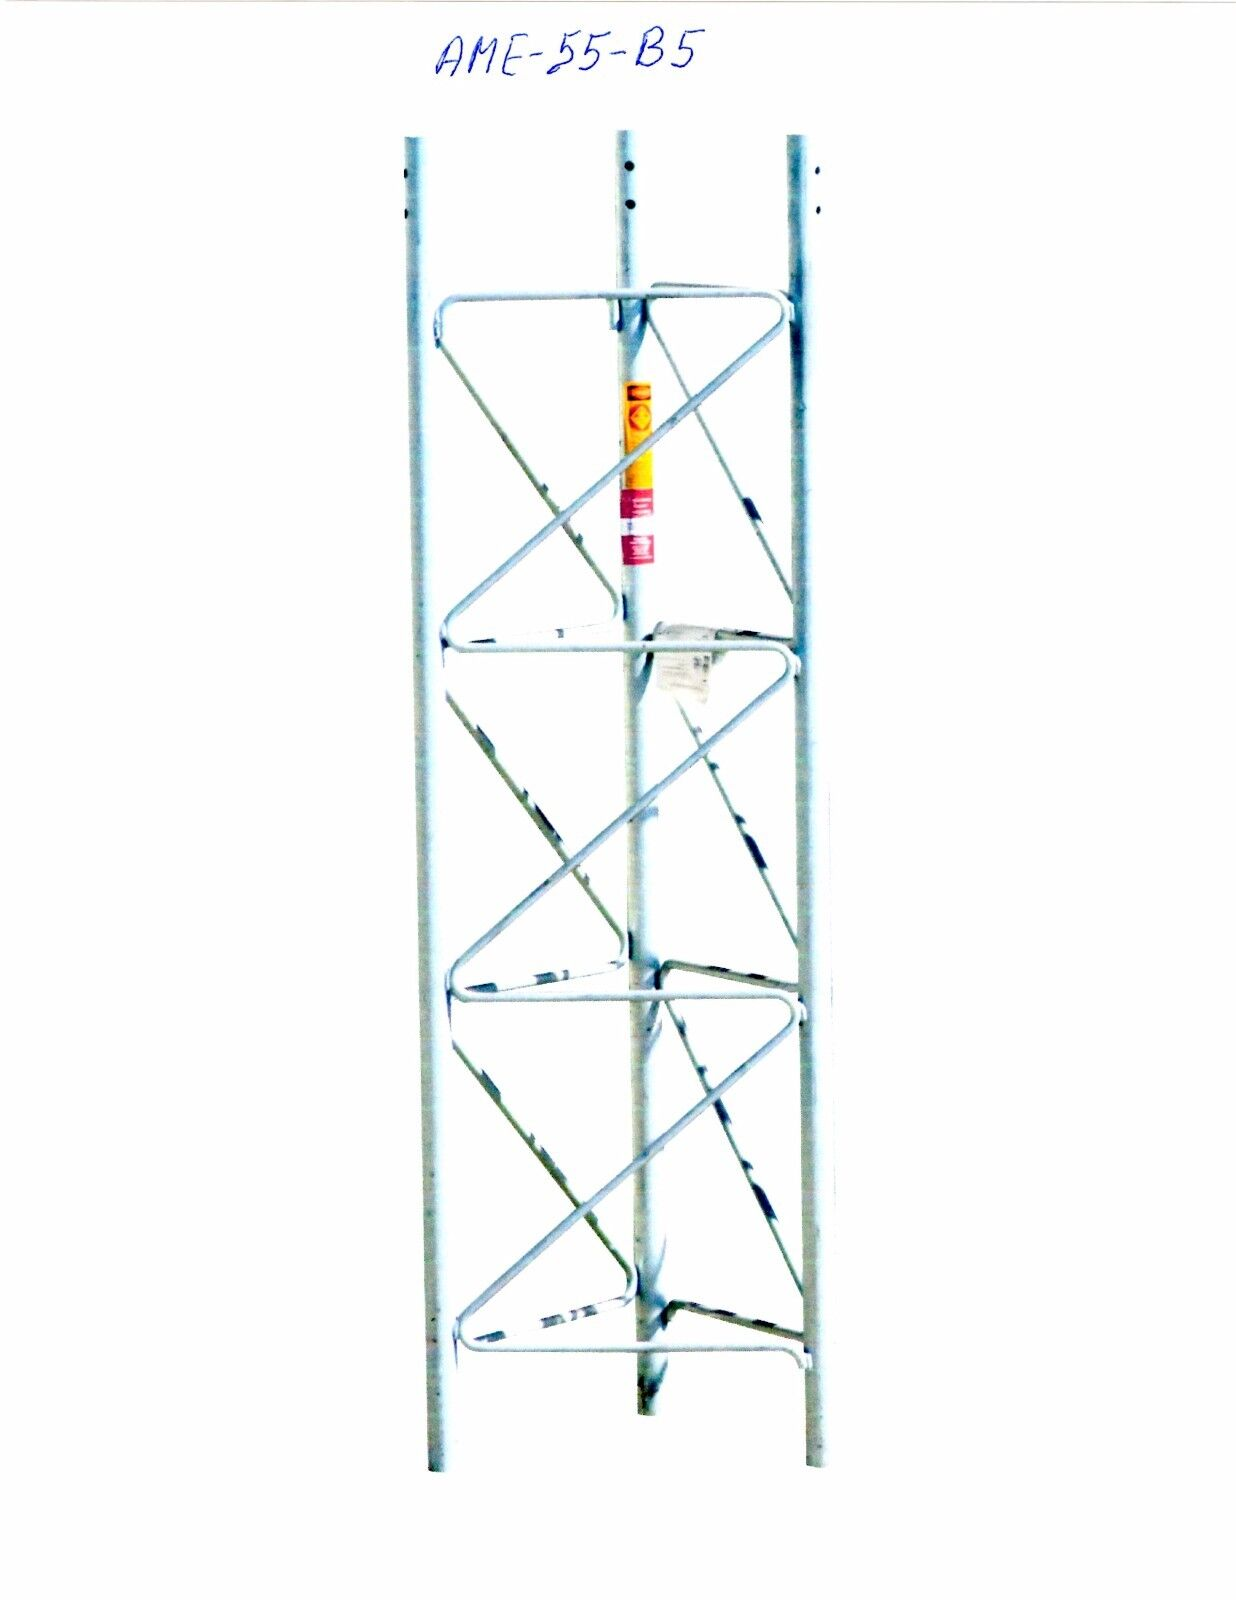 AMERICAN-AMERITE 55G, ROHN TOWER STYLE- 5 FOOT BASE, Std- NEW. Available Now for 199.00